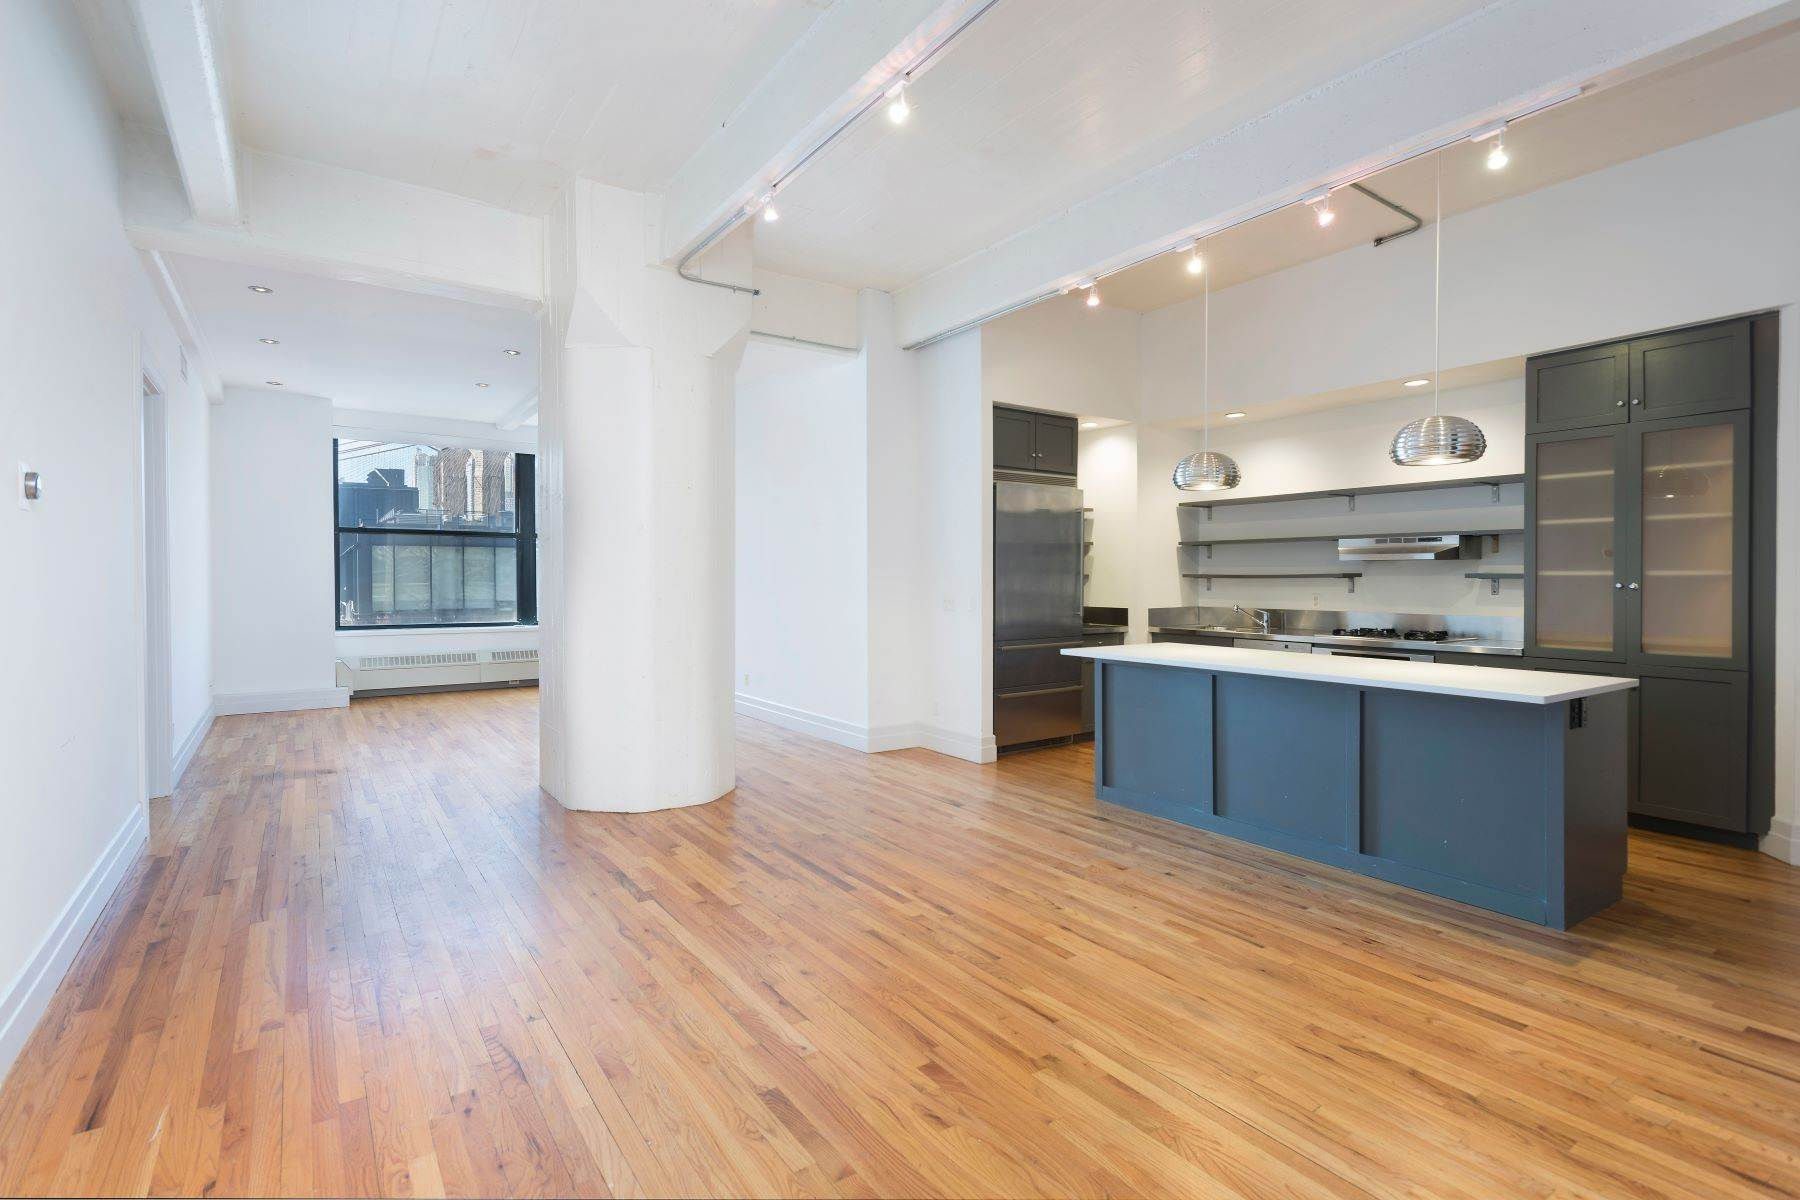 Condominiums lúc True Definition of a DUMBO Loft 1 Main Street, Apt 5L Brooklyn, New York 11201 Hoa Kỳ